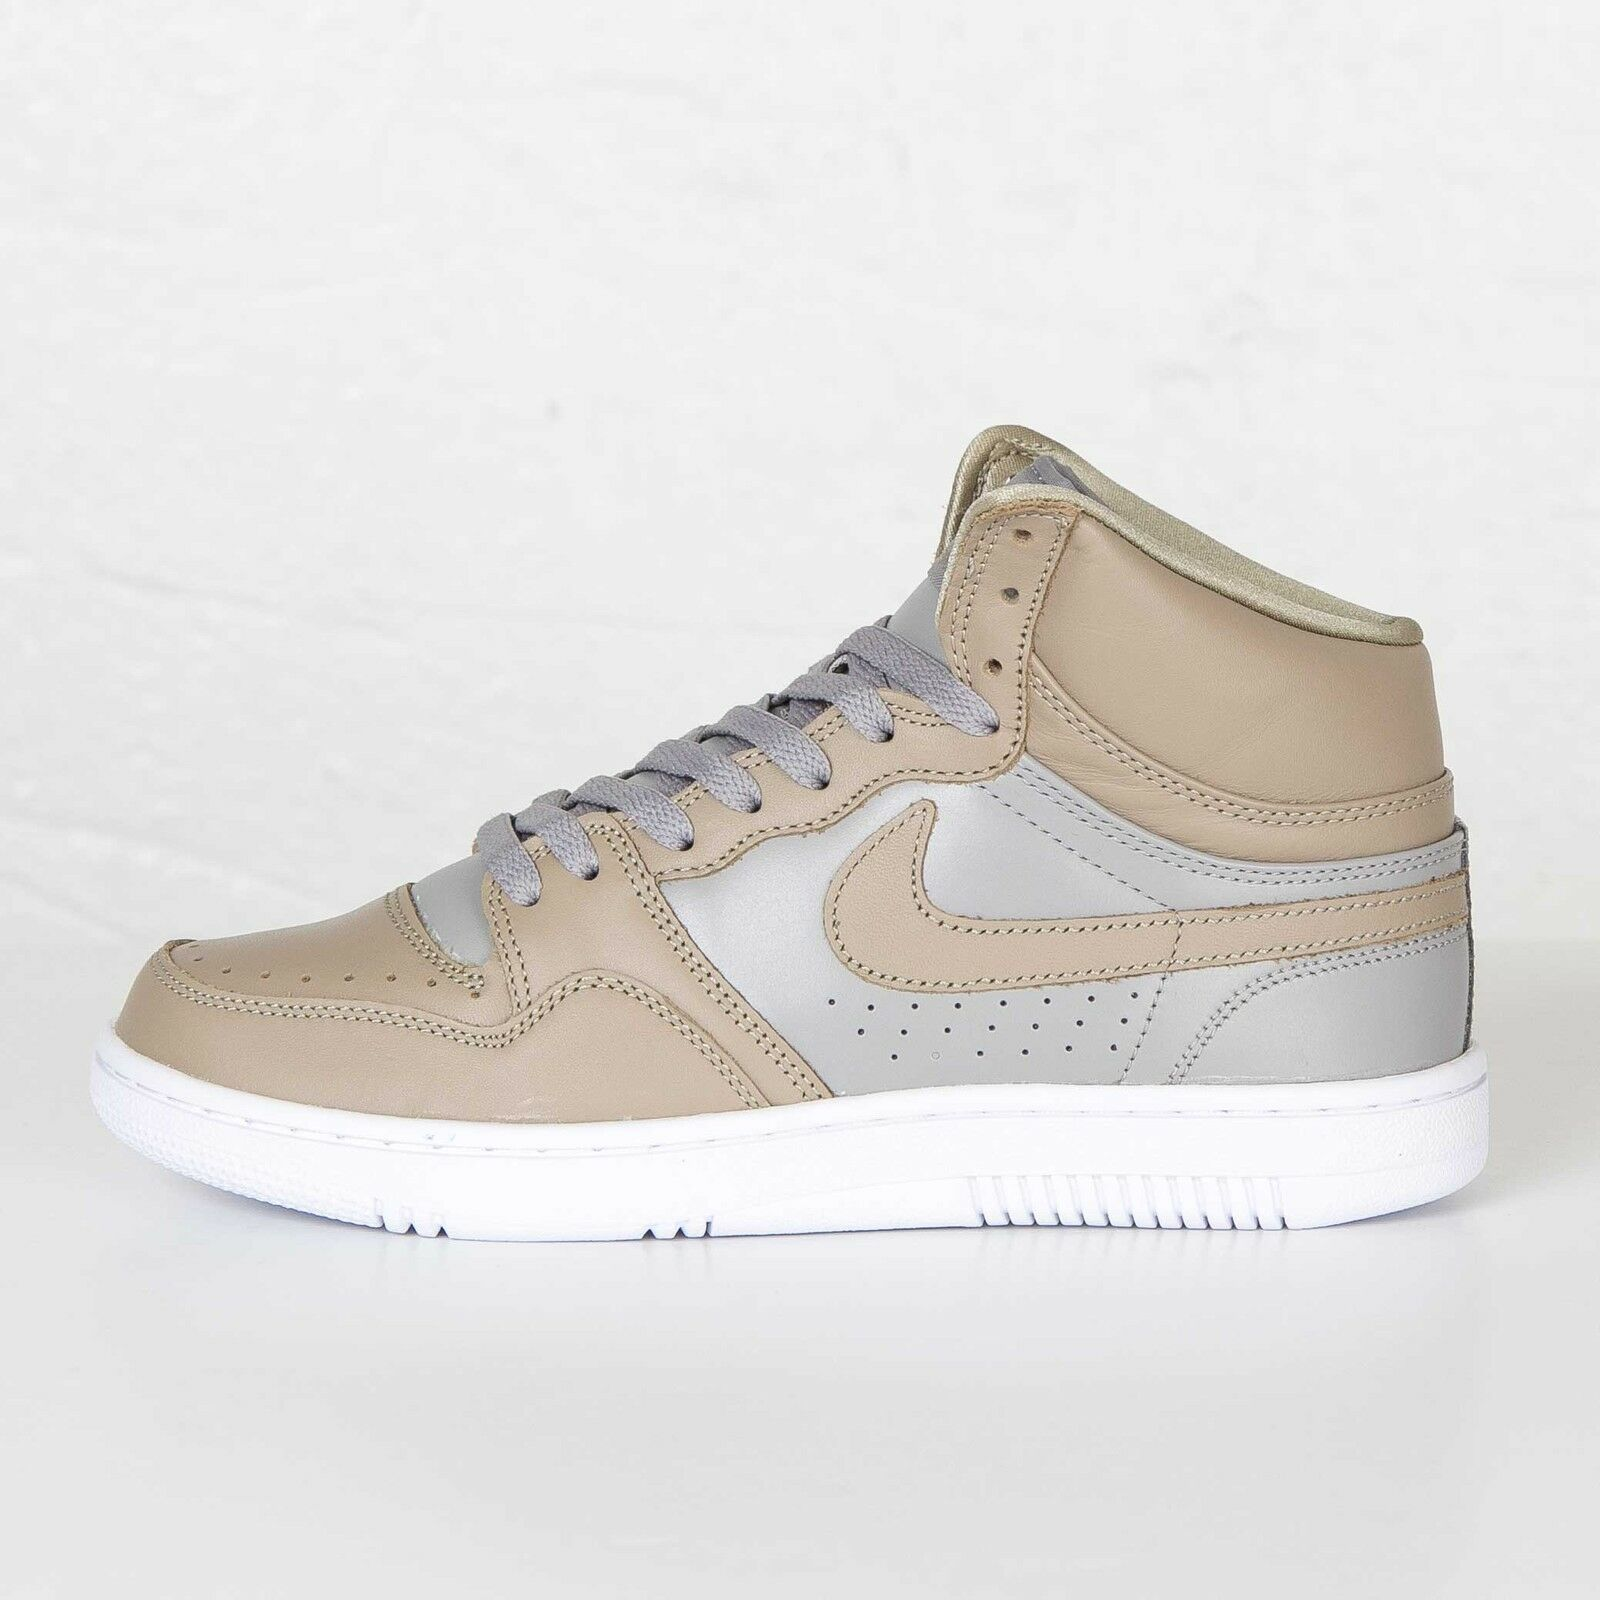 NIKE X UNDERCOVER COURT Obliger 826667-220 Taille 8.5 US